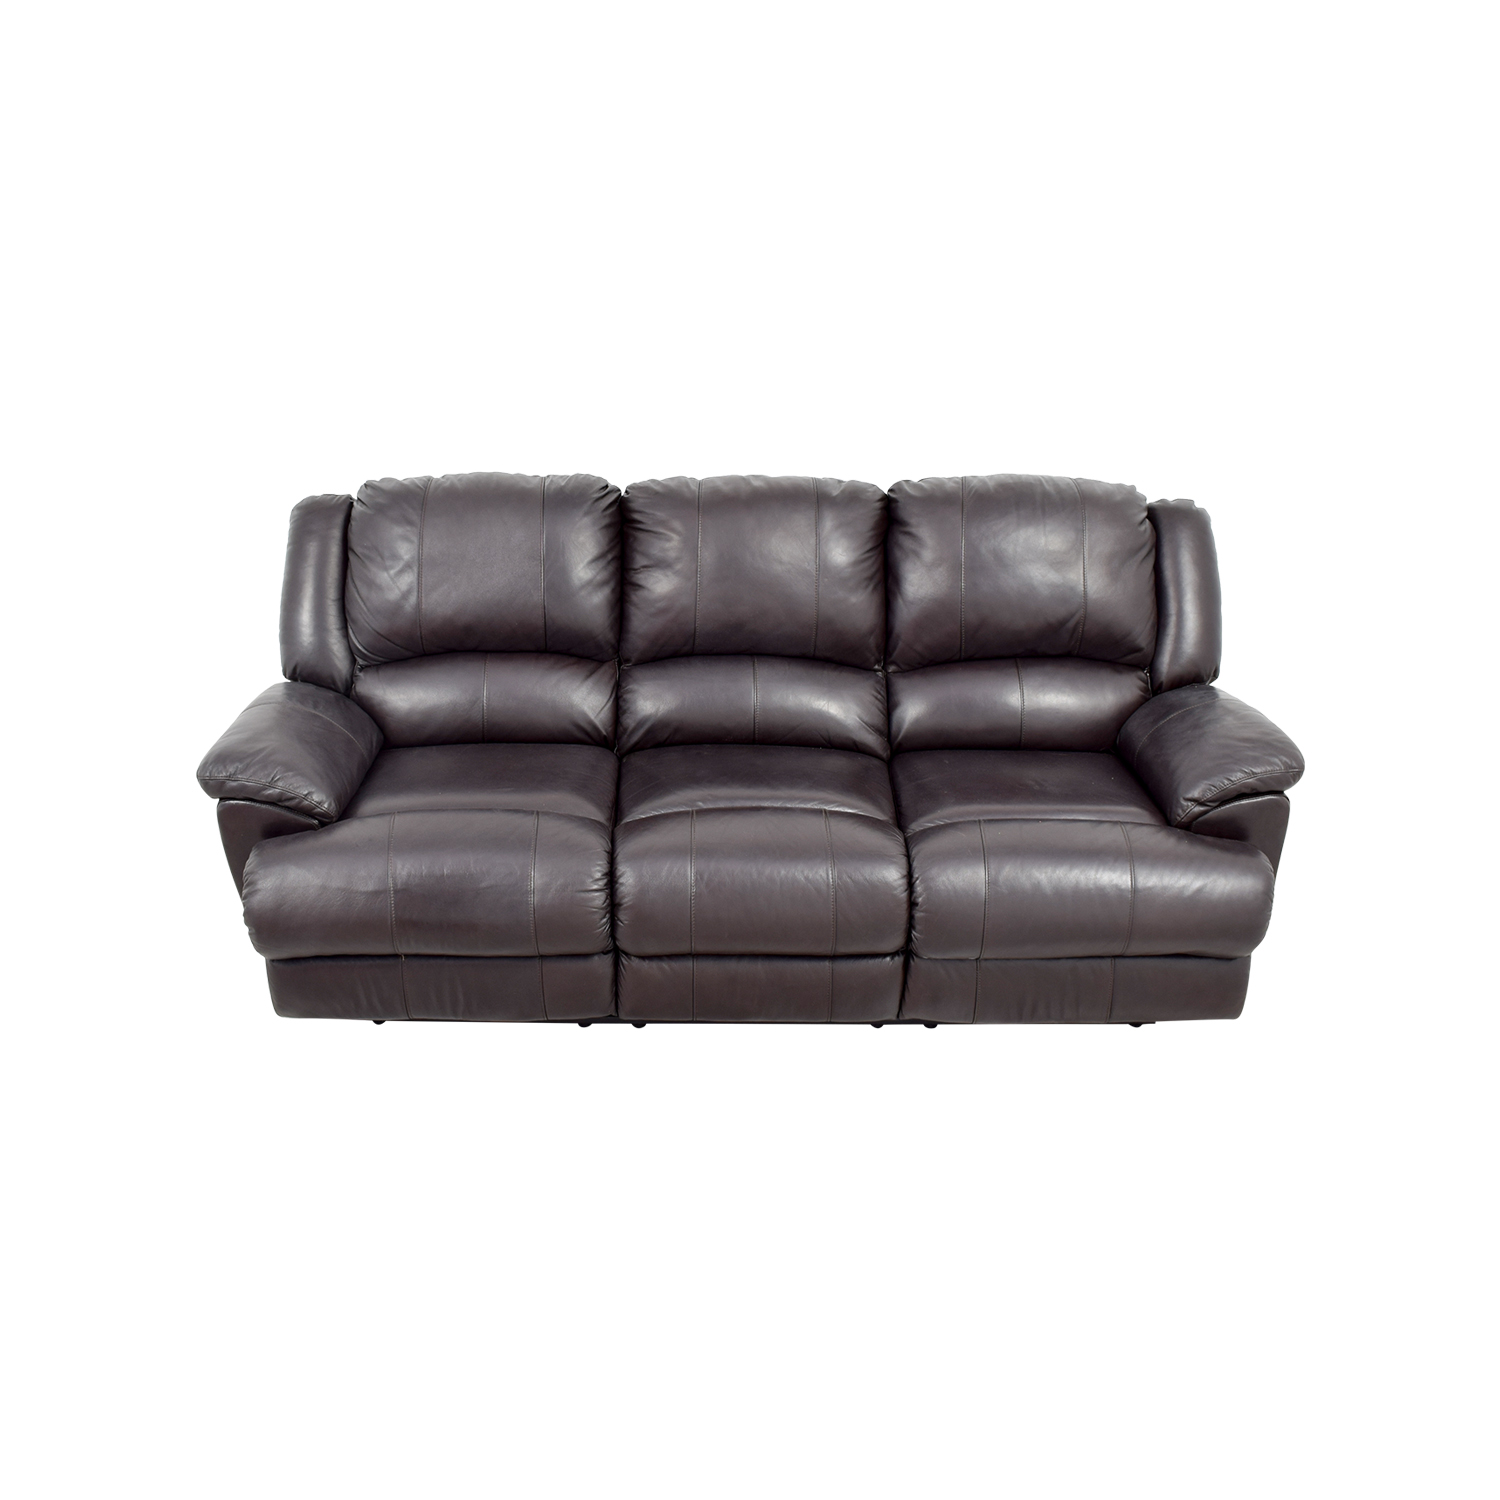 Jennifer Convertibles Jennifer Convertibles Brown Leather Sofa used